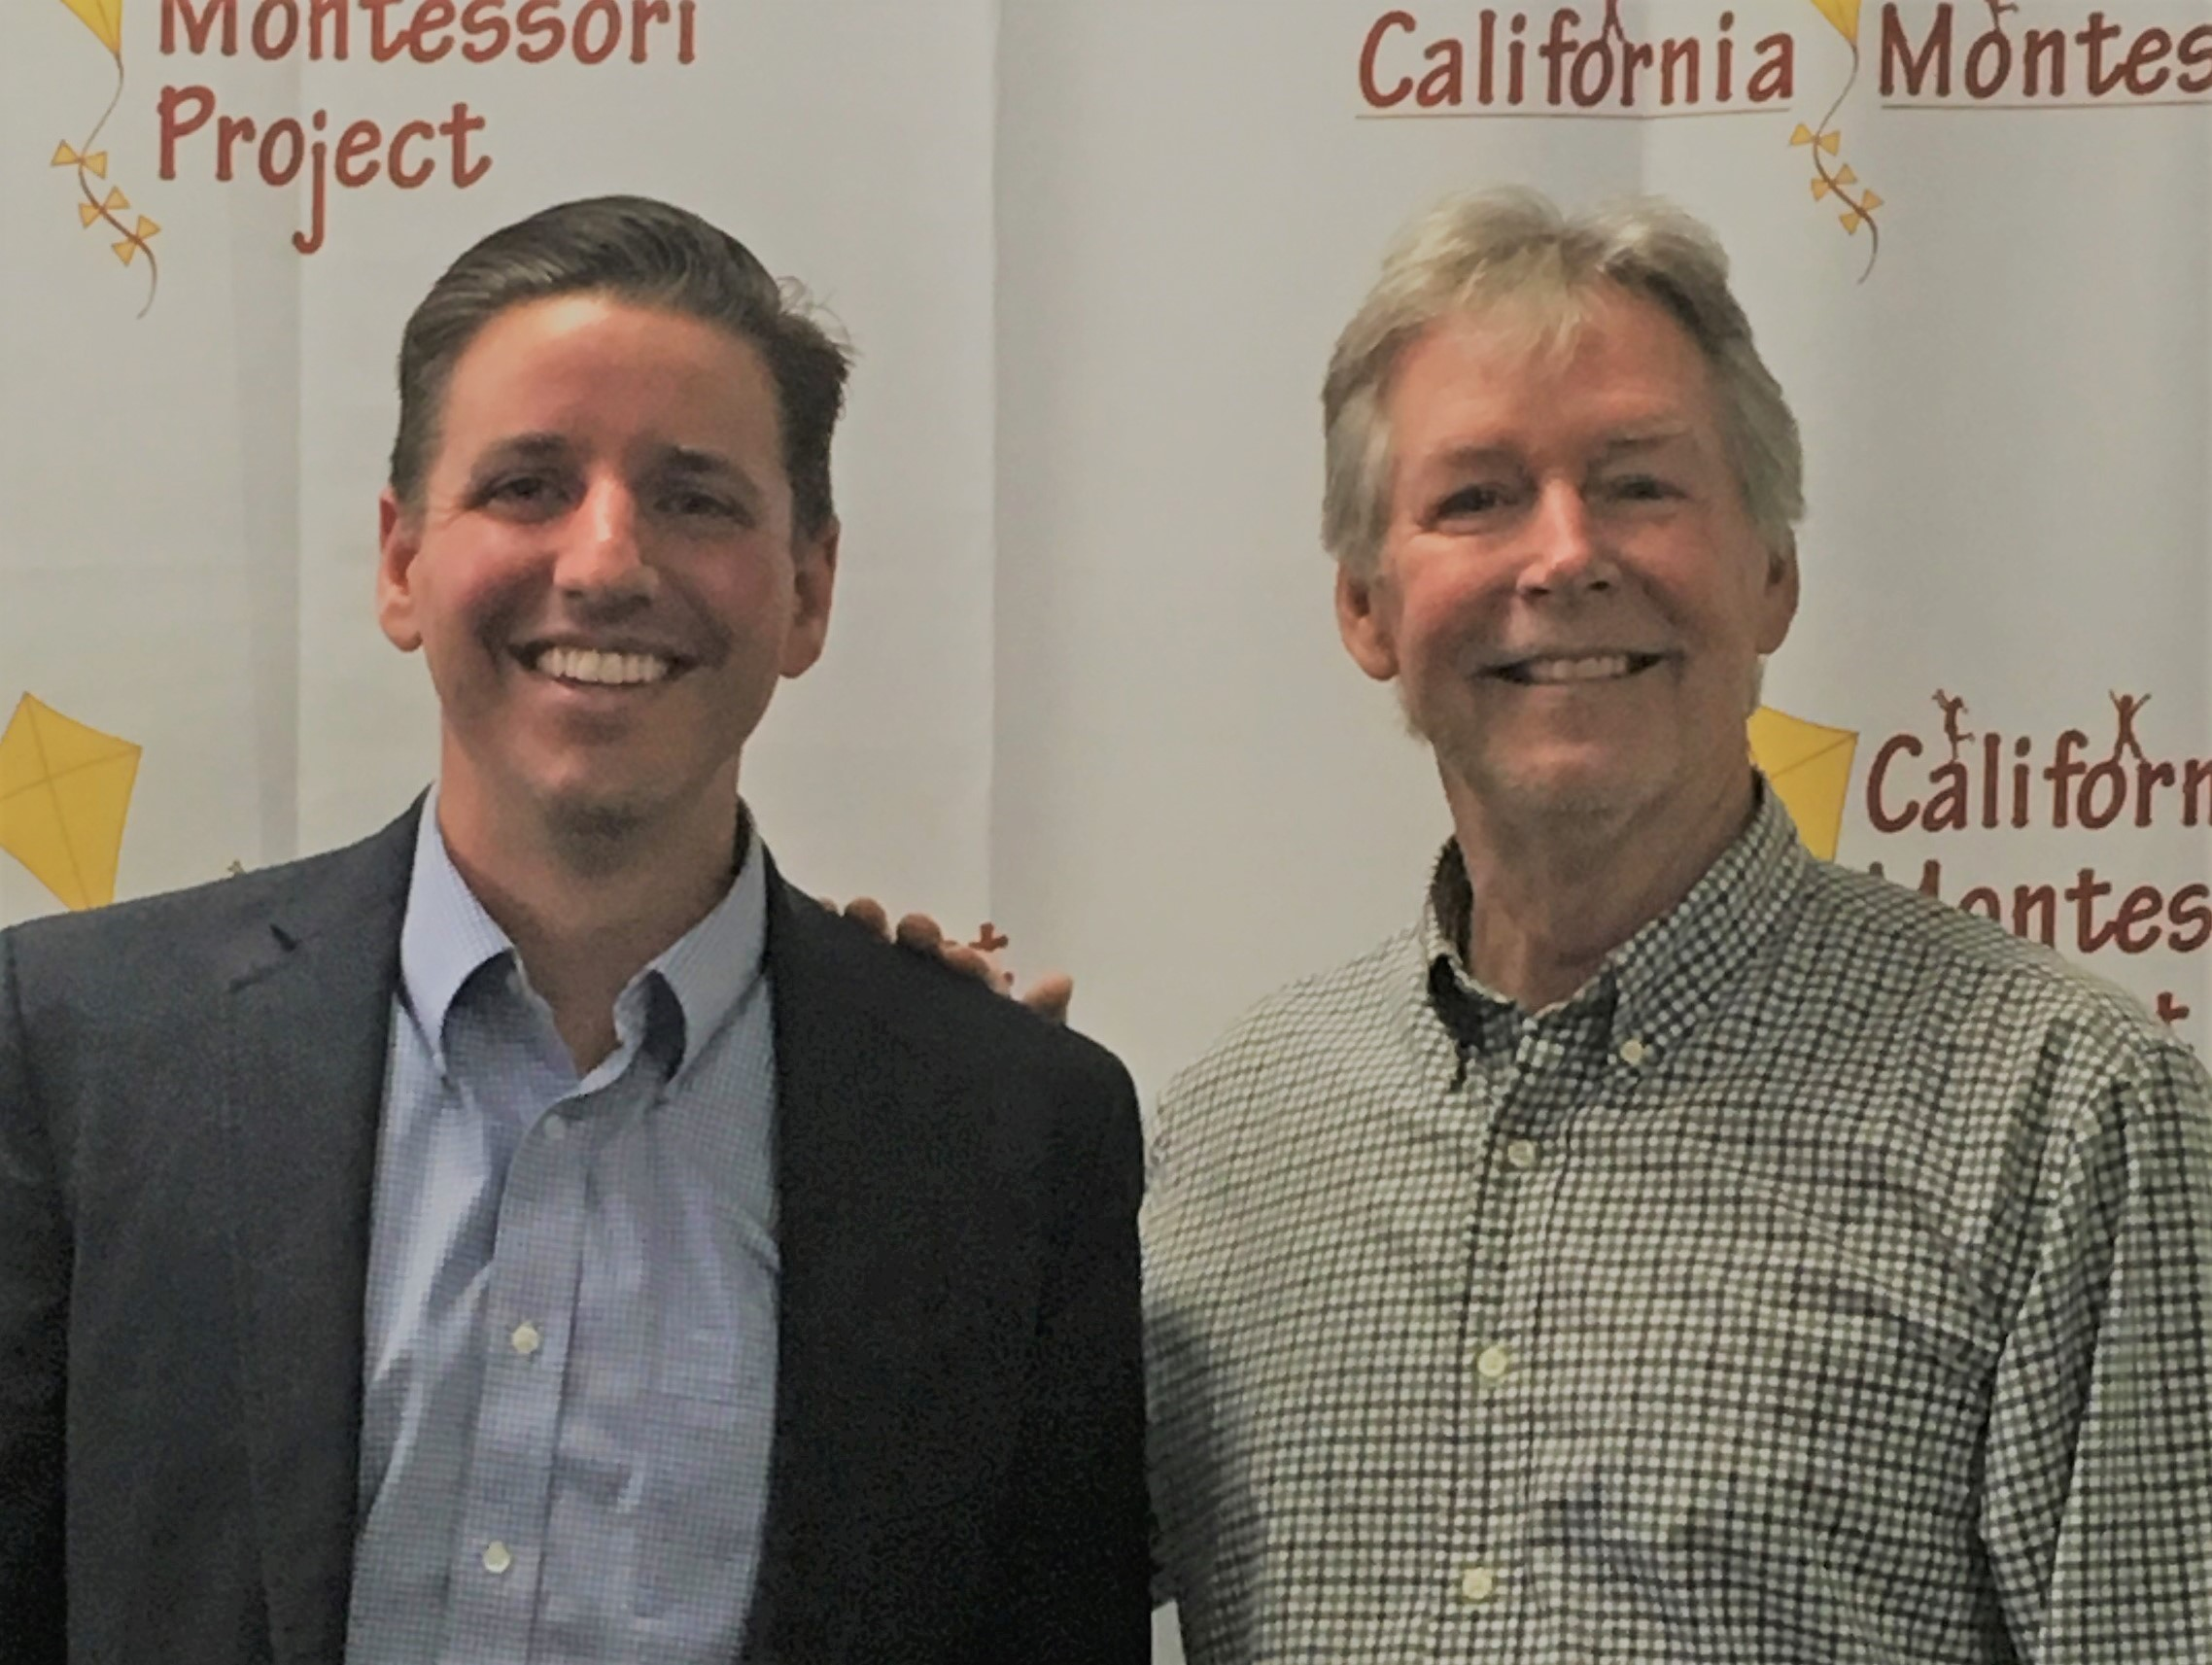 Gary Bowman, Executive Director and Brett Barley